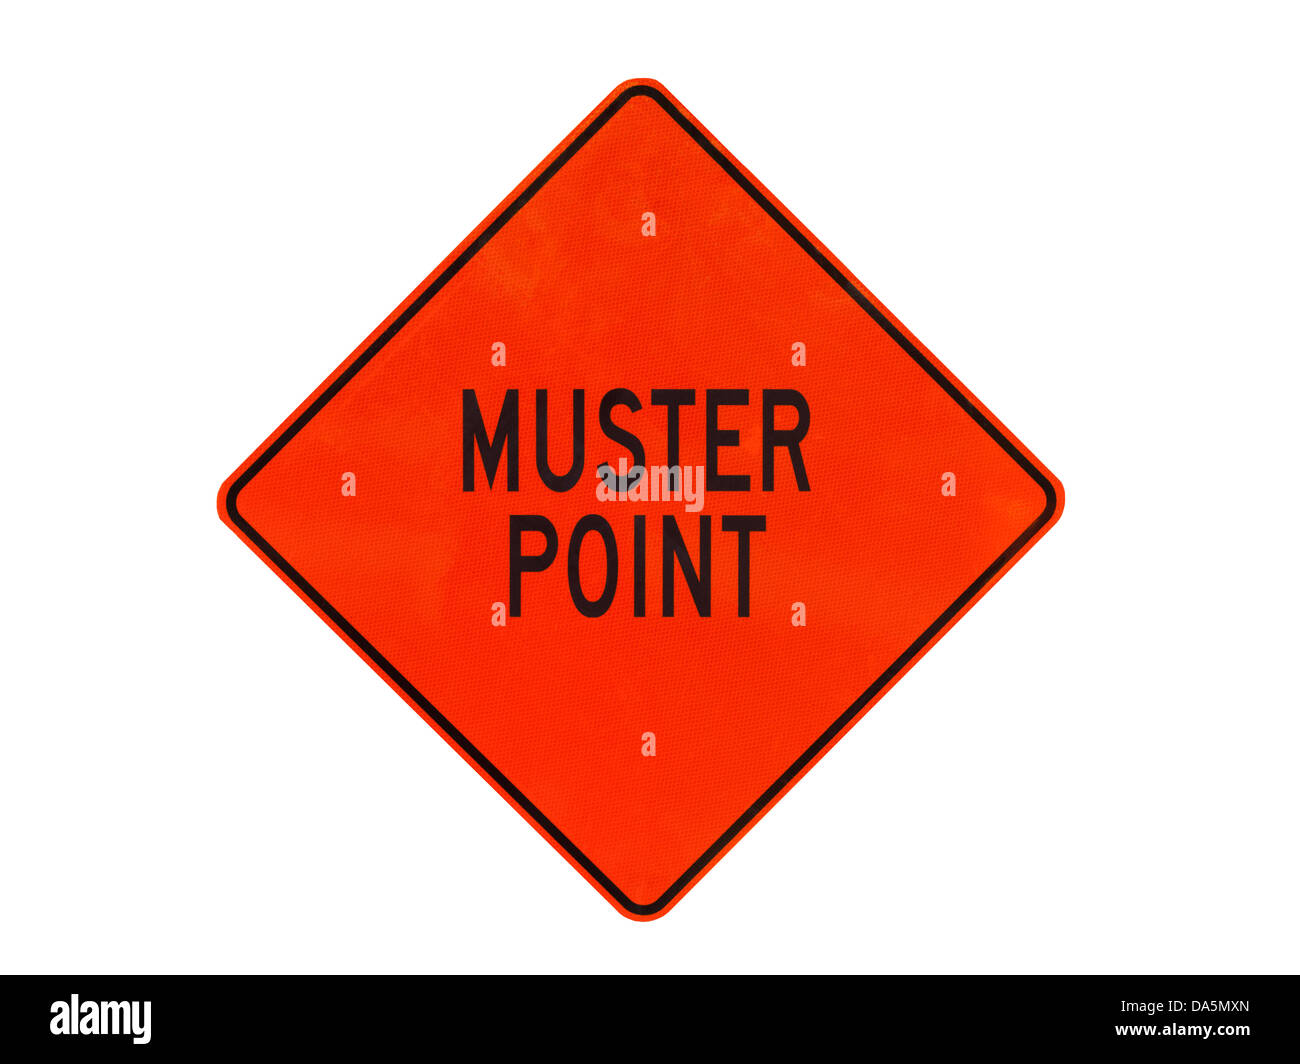 Muster point sign - Stock Image